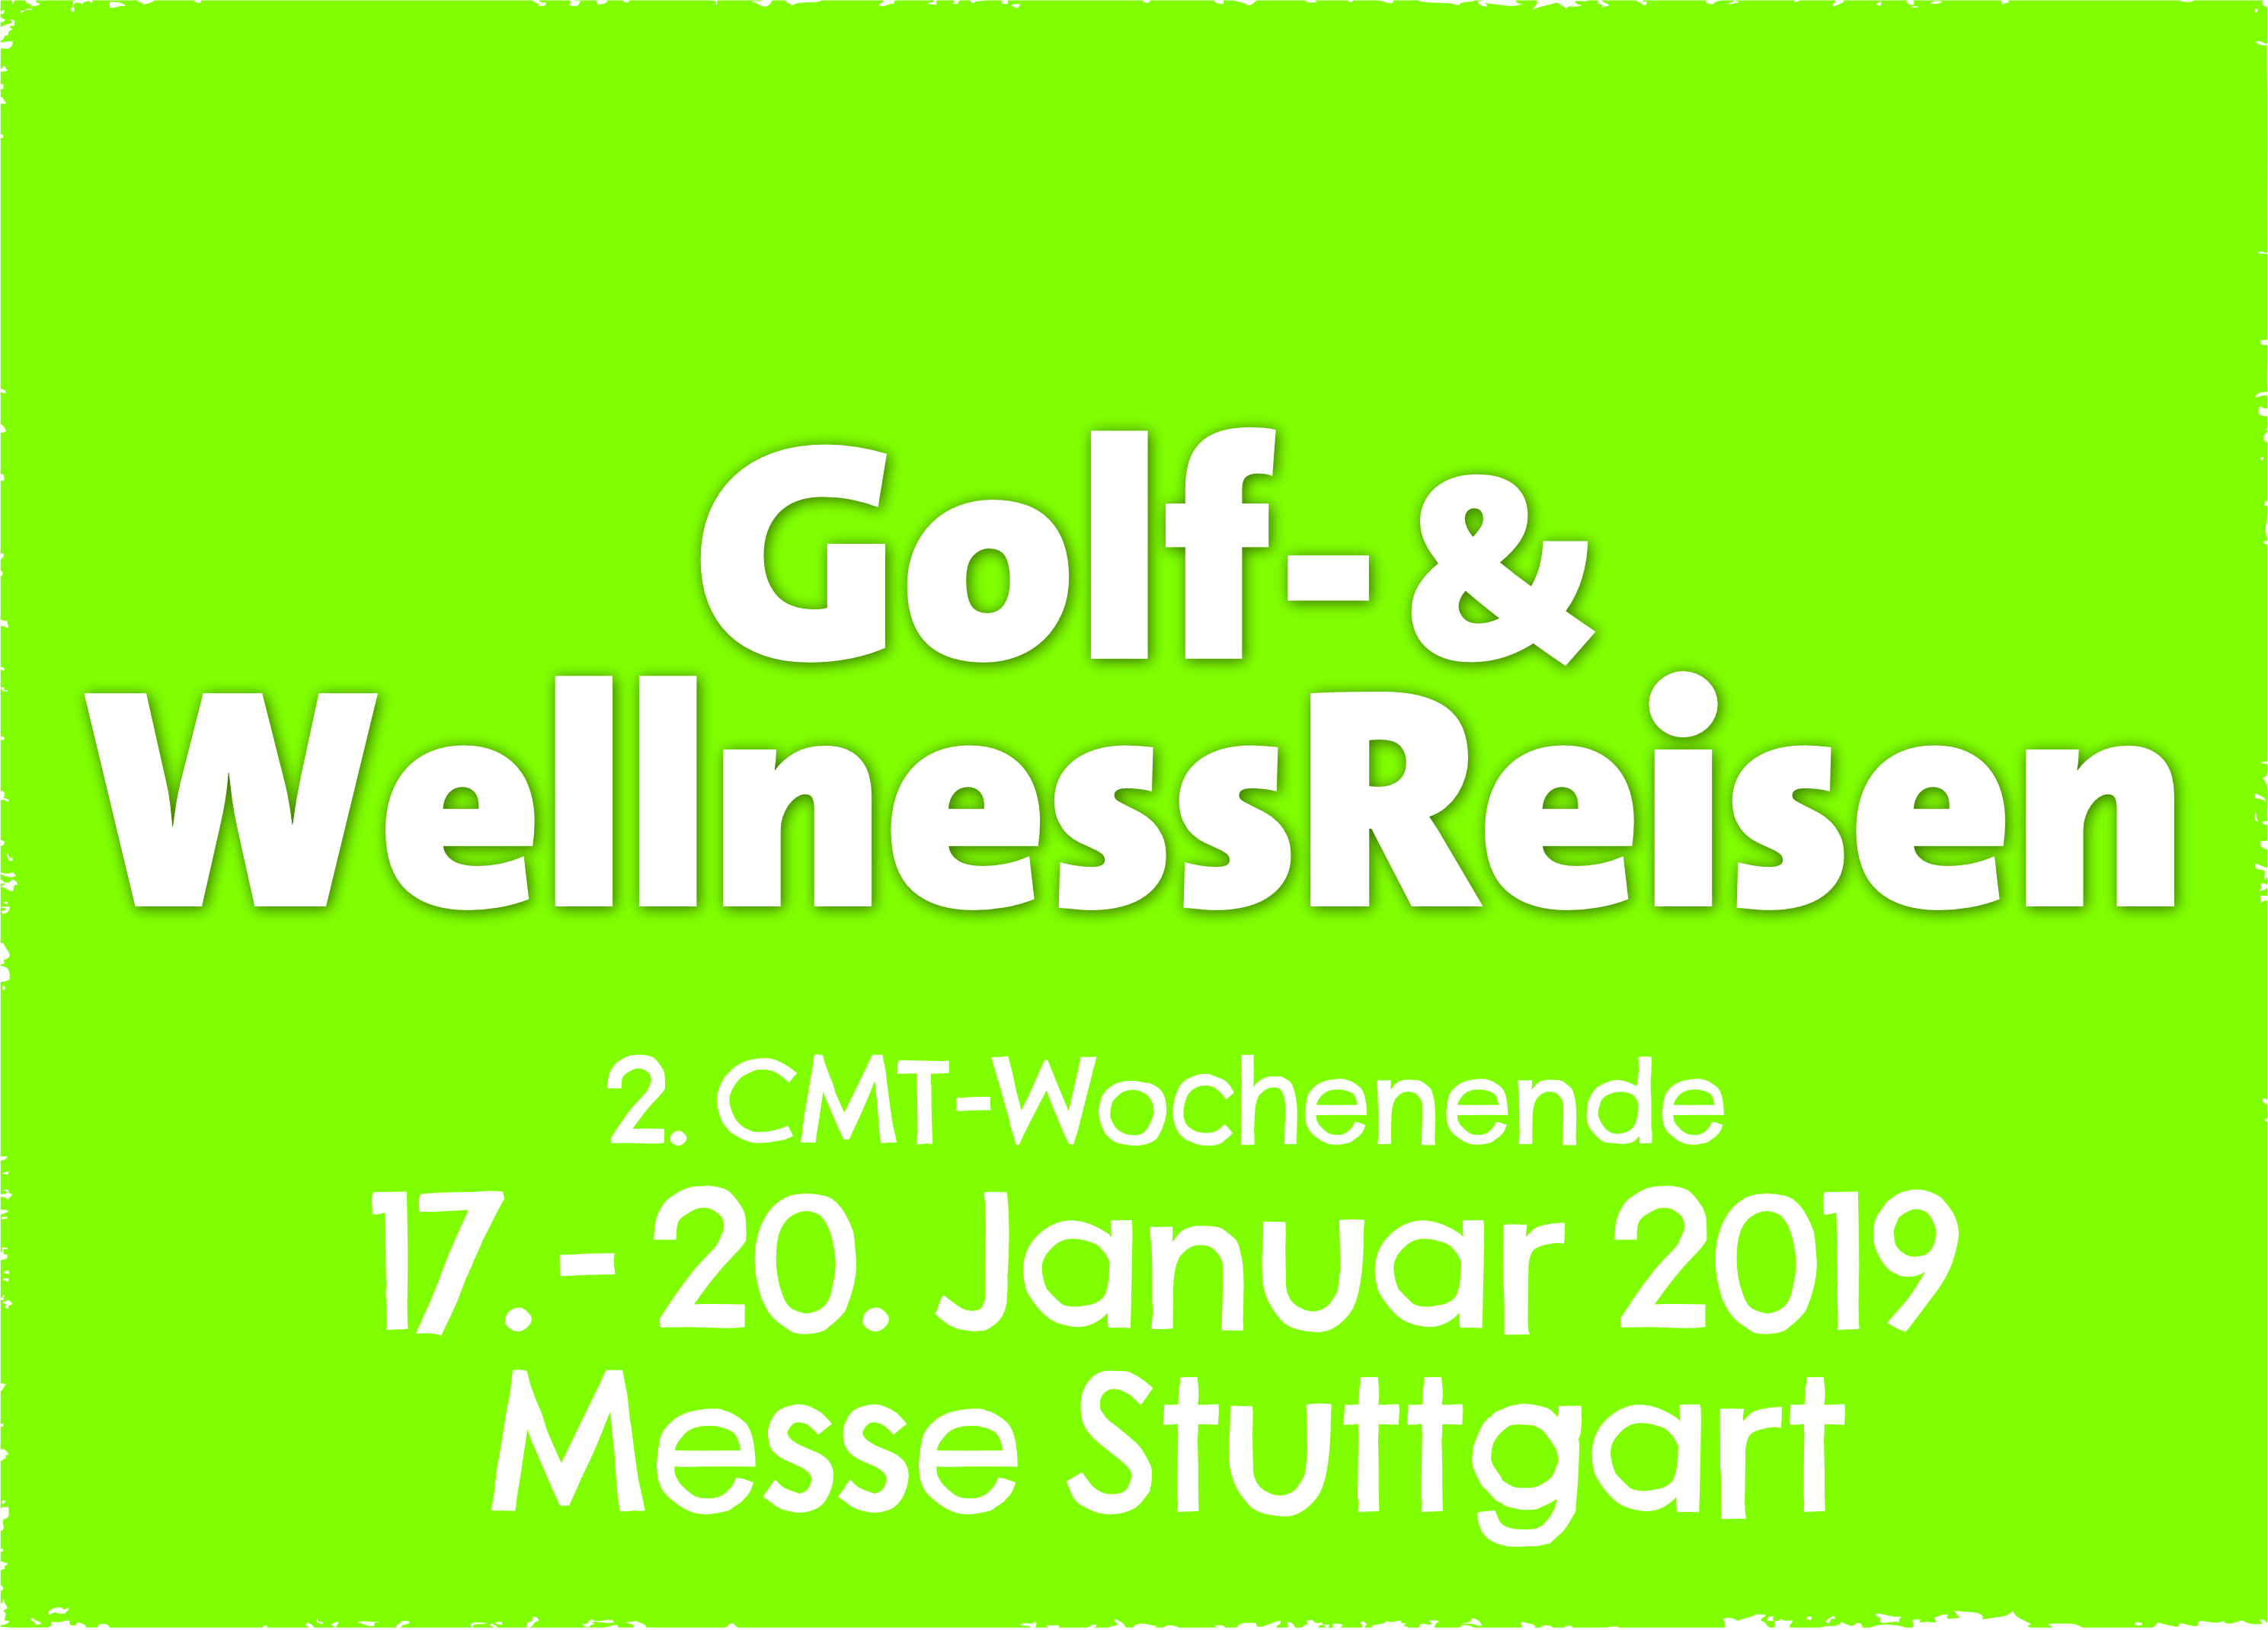 CMT 2019 Golf- & WellnessReisen